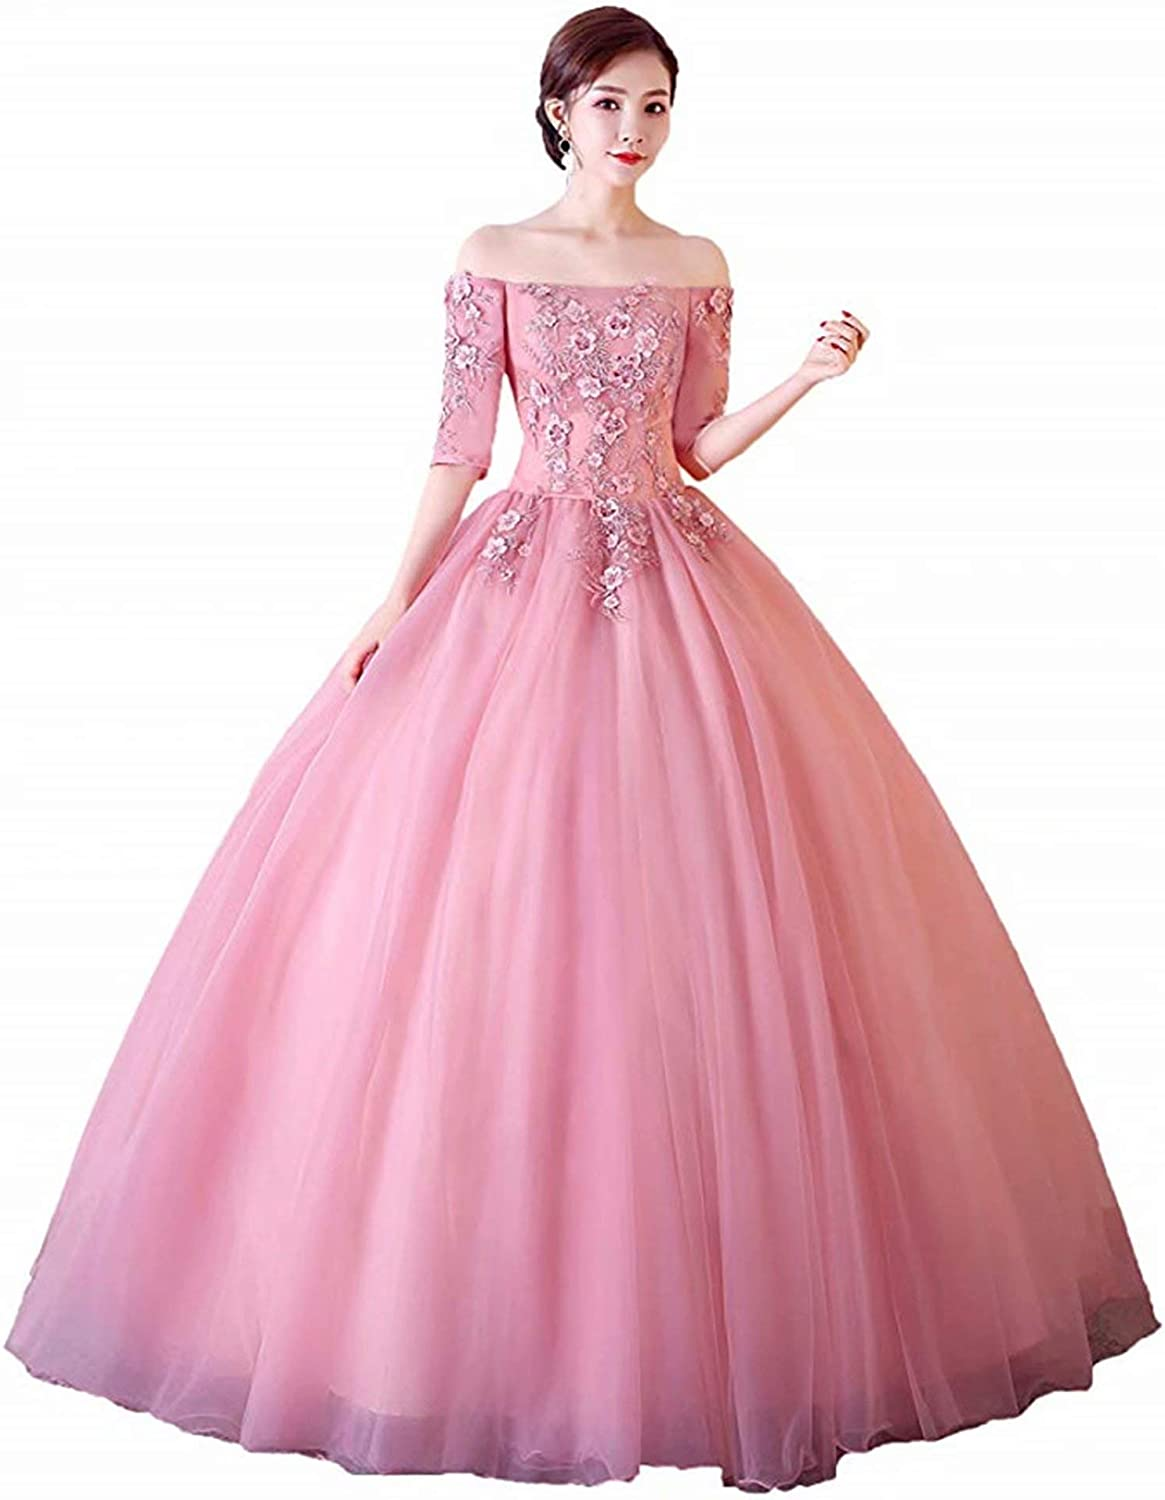 Honeywedding Women's Floor Length Vintage Quinceanera Dresses Off Shoulder Lace Tulle Long Prom Ball Gowns